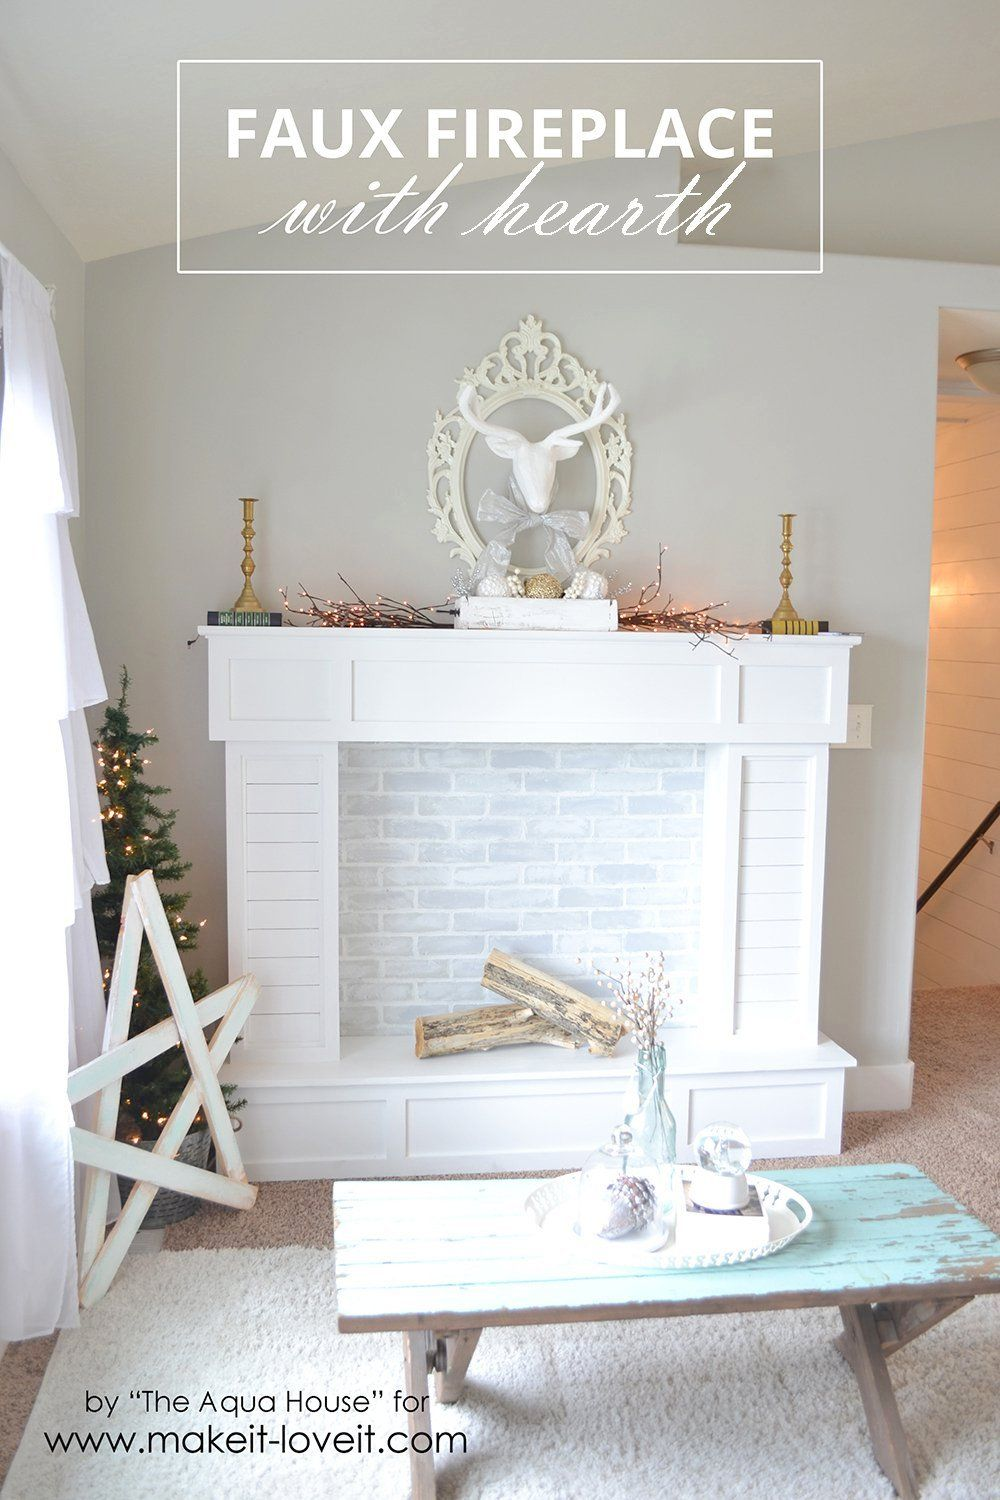 Pinterest Faux Fireplace Part - 33: Make A FAUX FIREPLACE WITH HEARTH...that Looks Absolutely Real! | Via